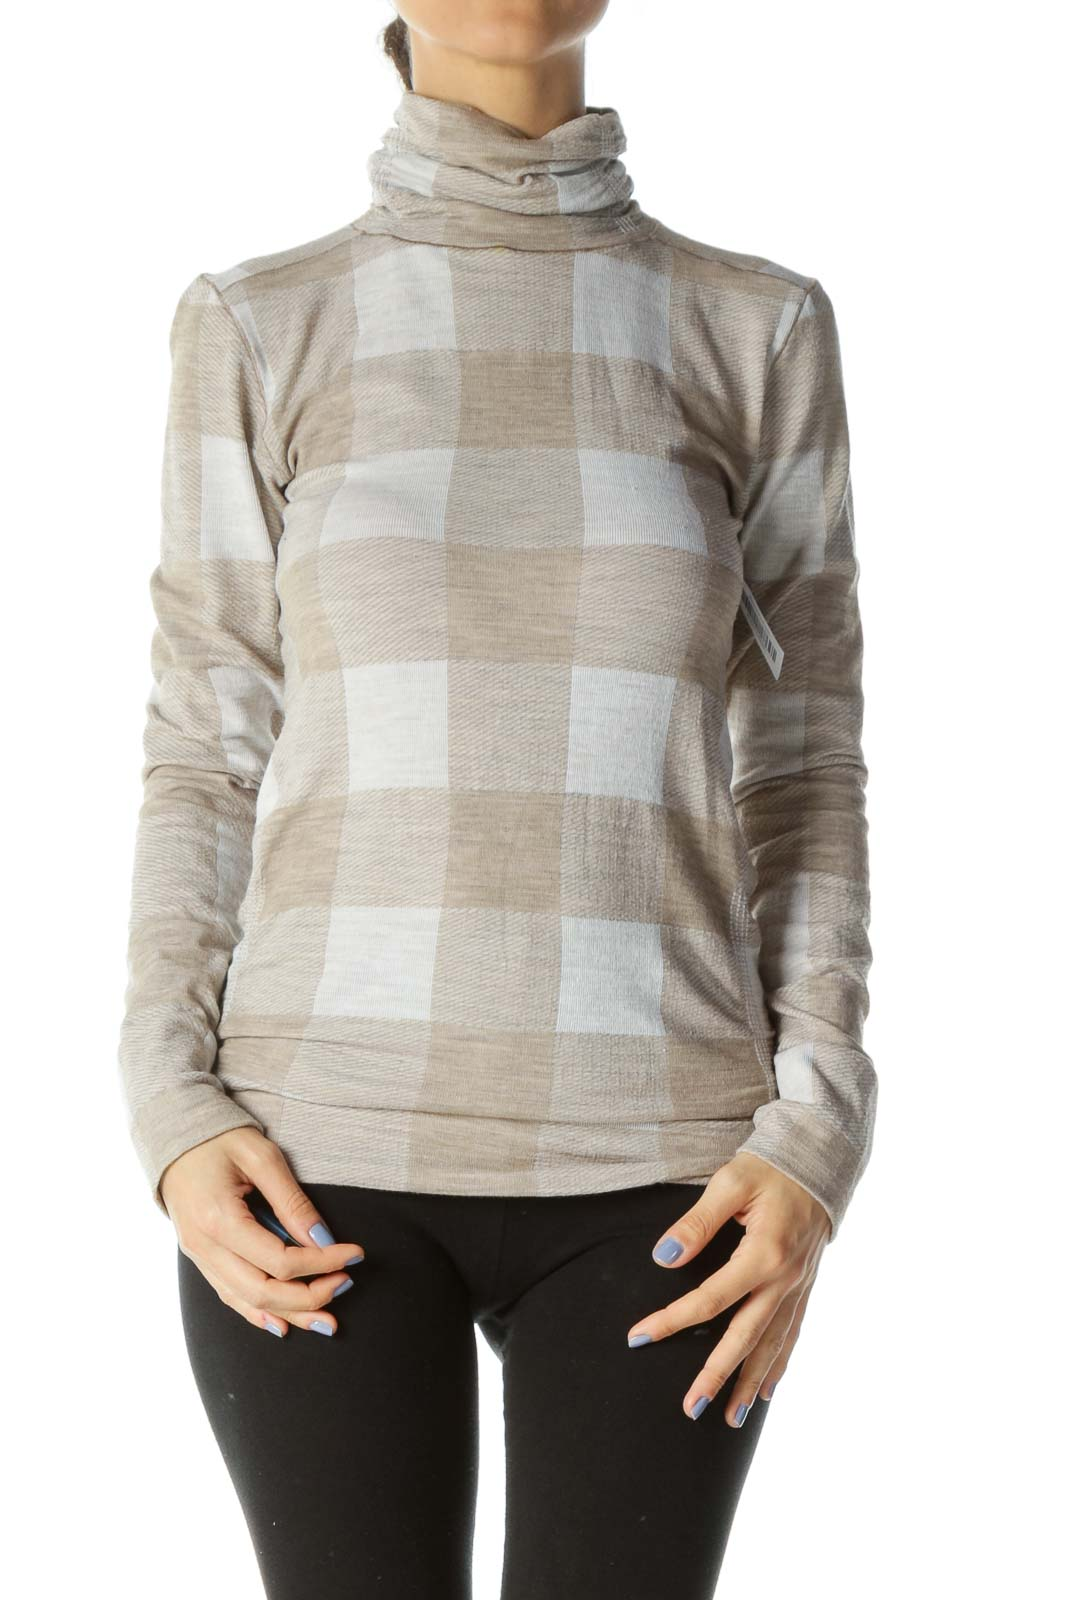 Beige/White Turtle-Neck Long-Sleeve Textured Gingham Knit Activewear Top